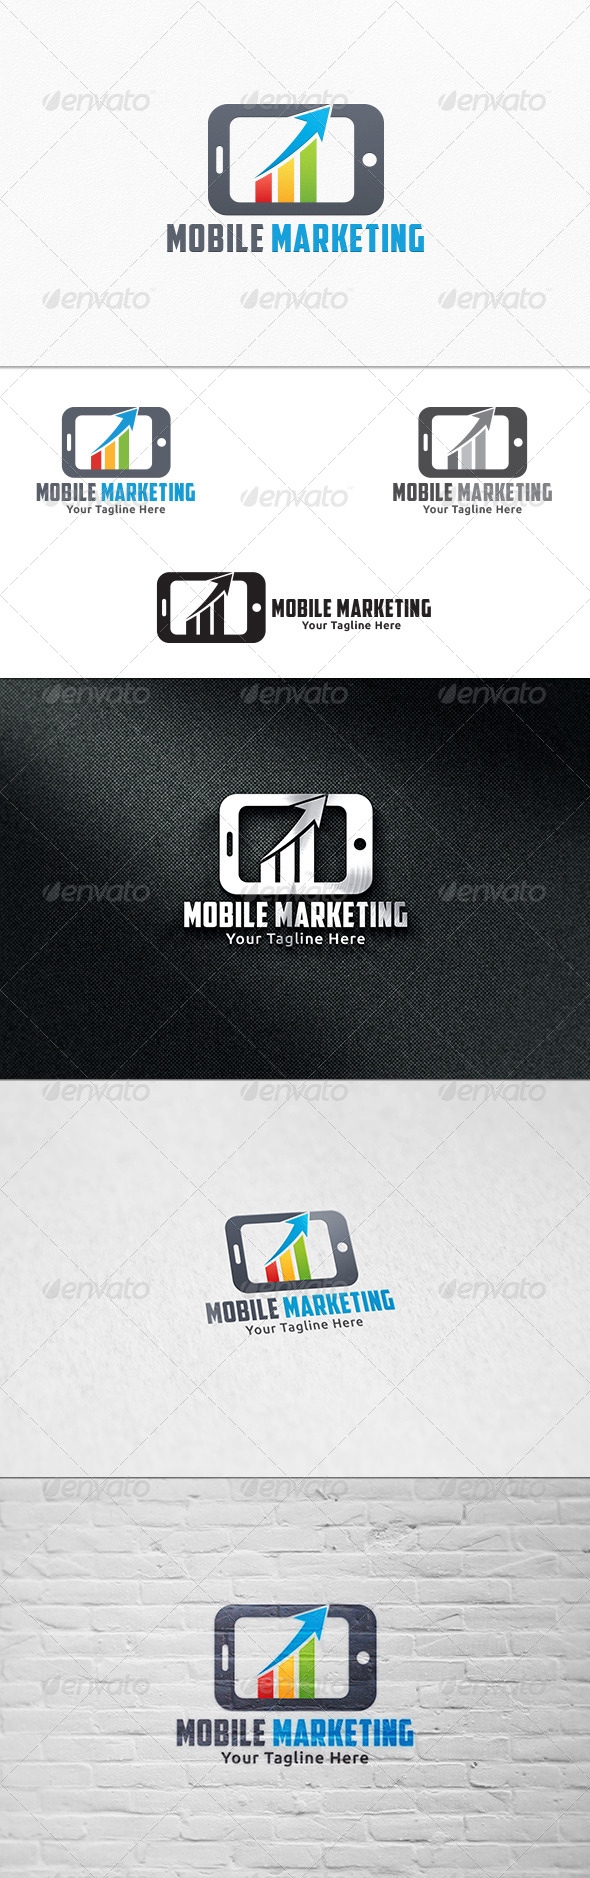 GraphicRiver Mobile Marketing Logo Template 7811839